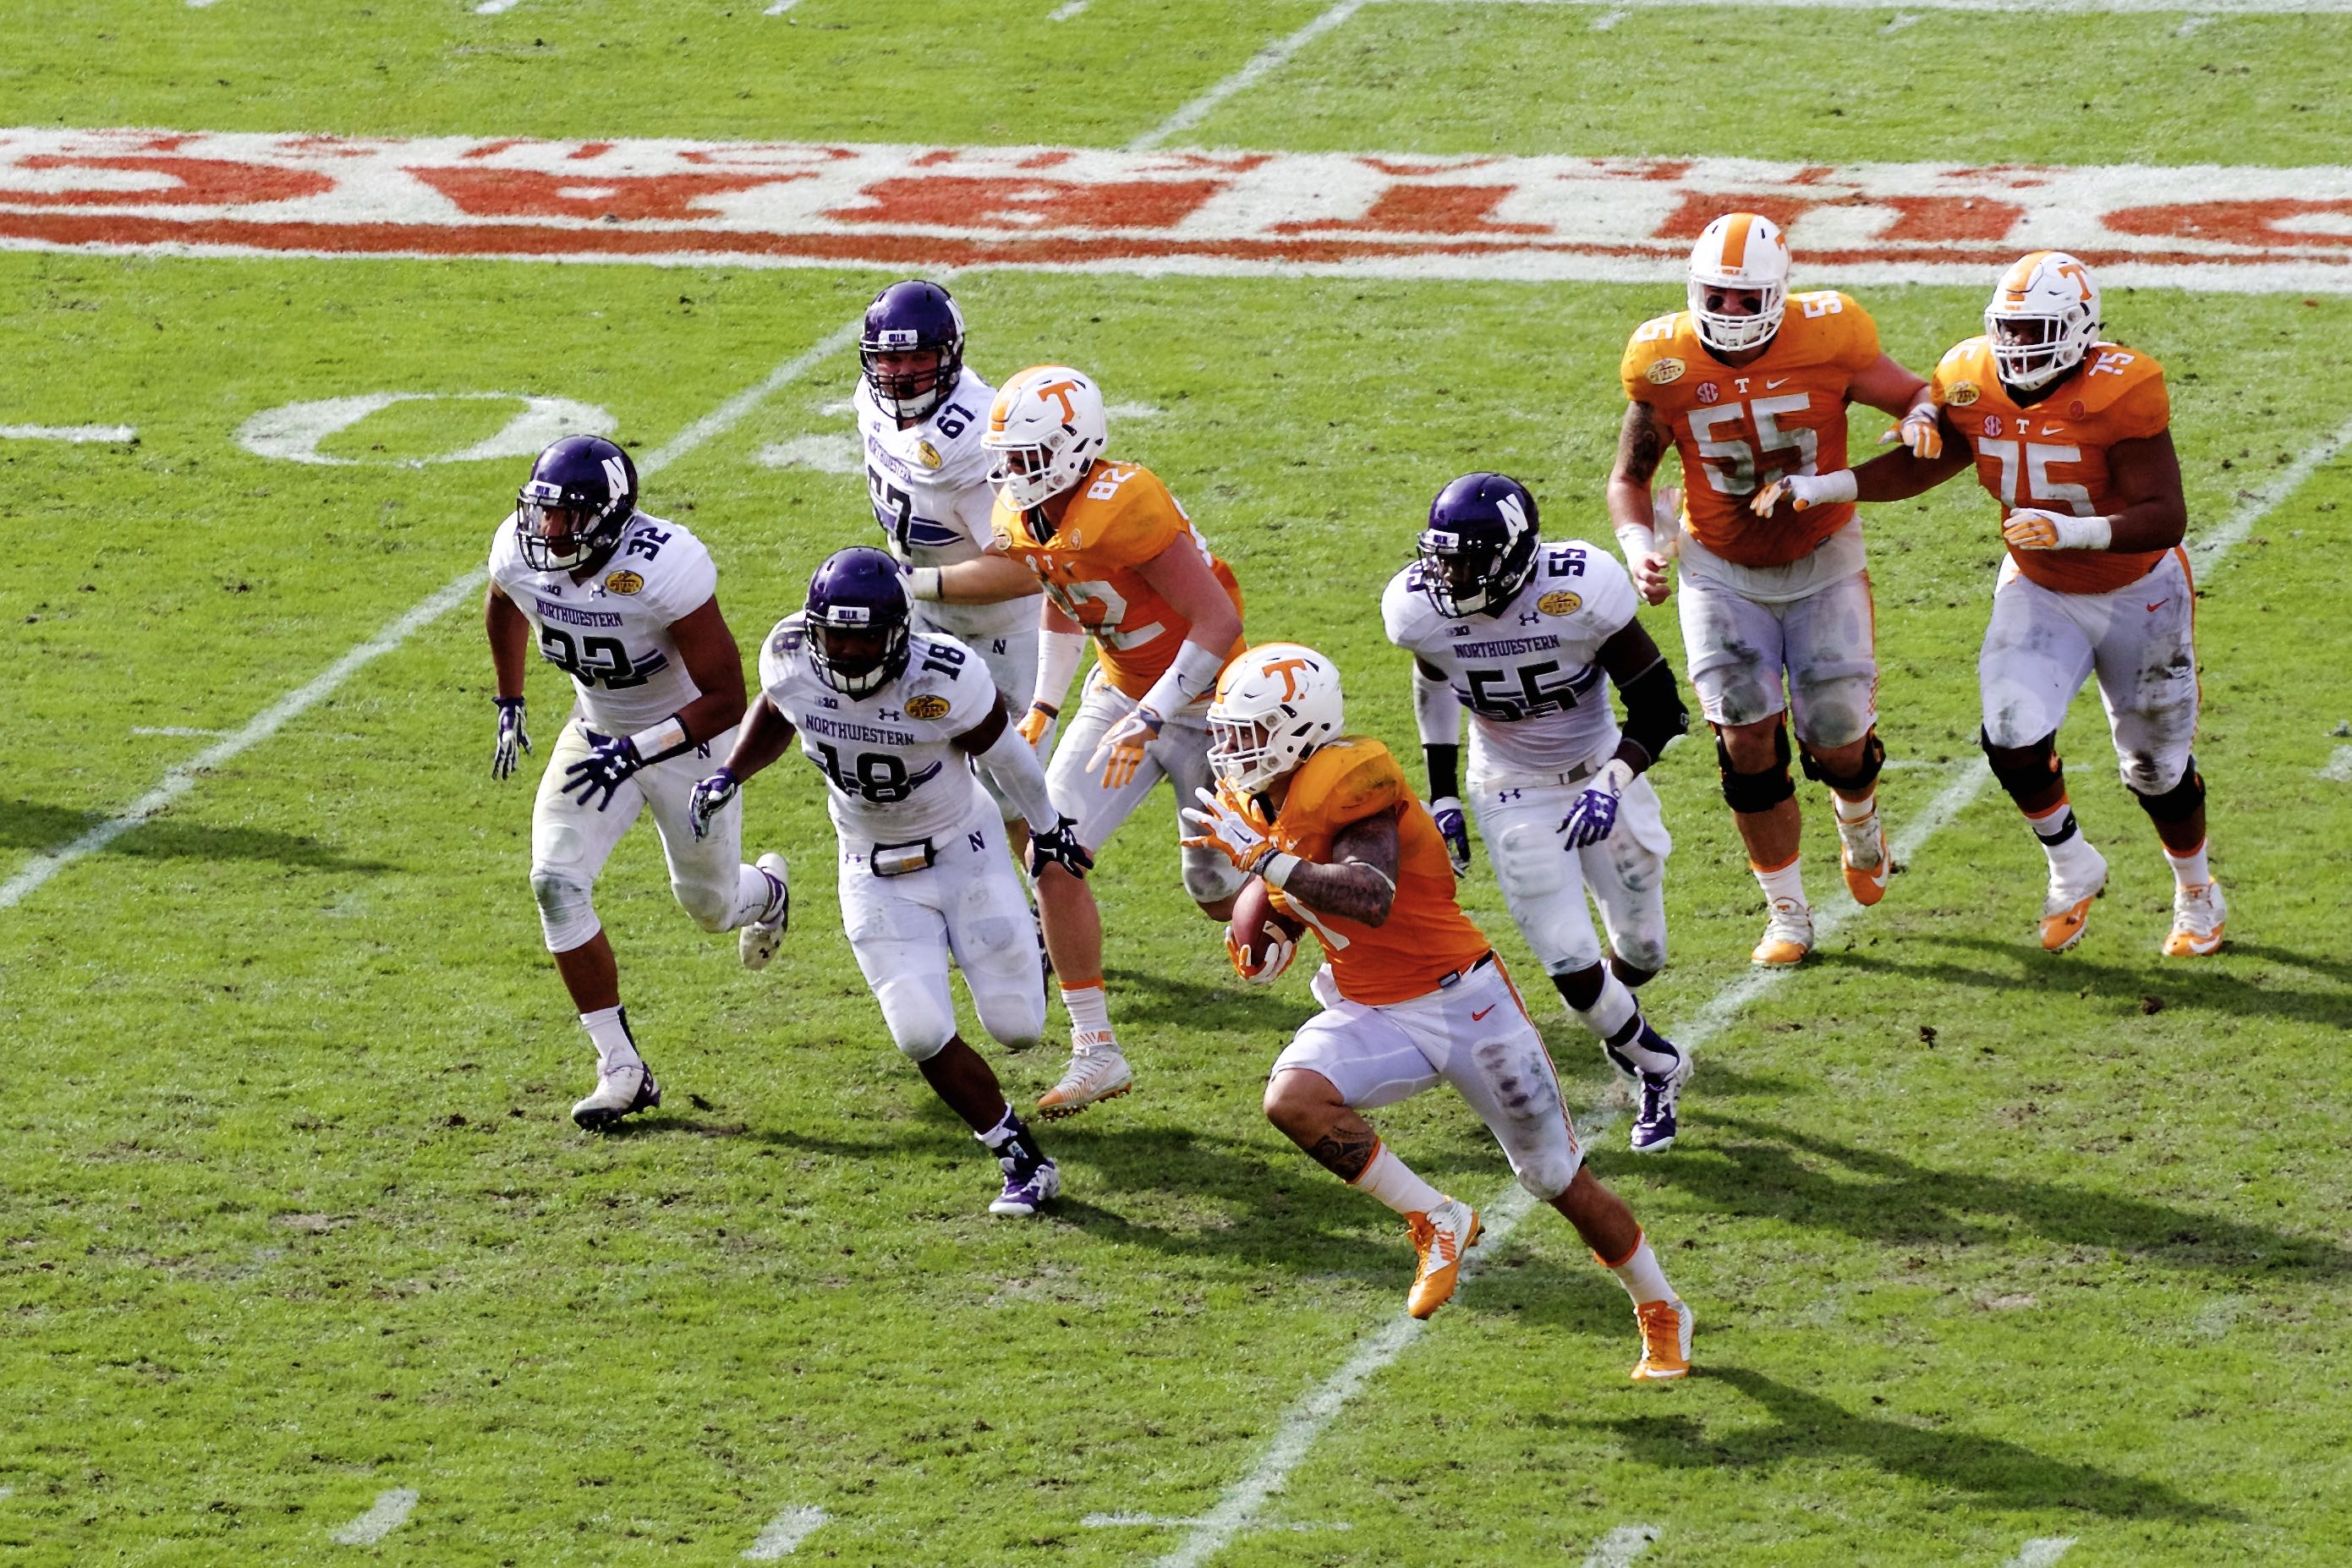 Tennessee roster, depth chart breakdown by the numbers of class and star ratings